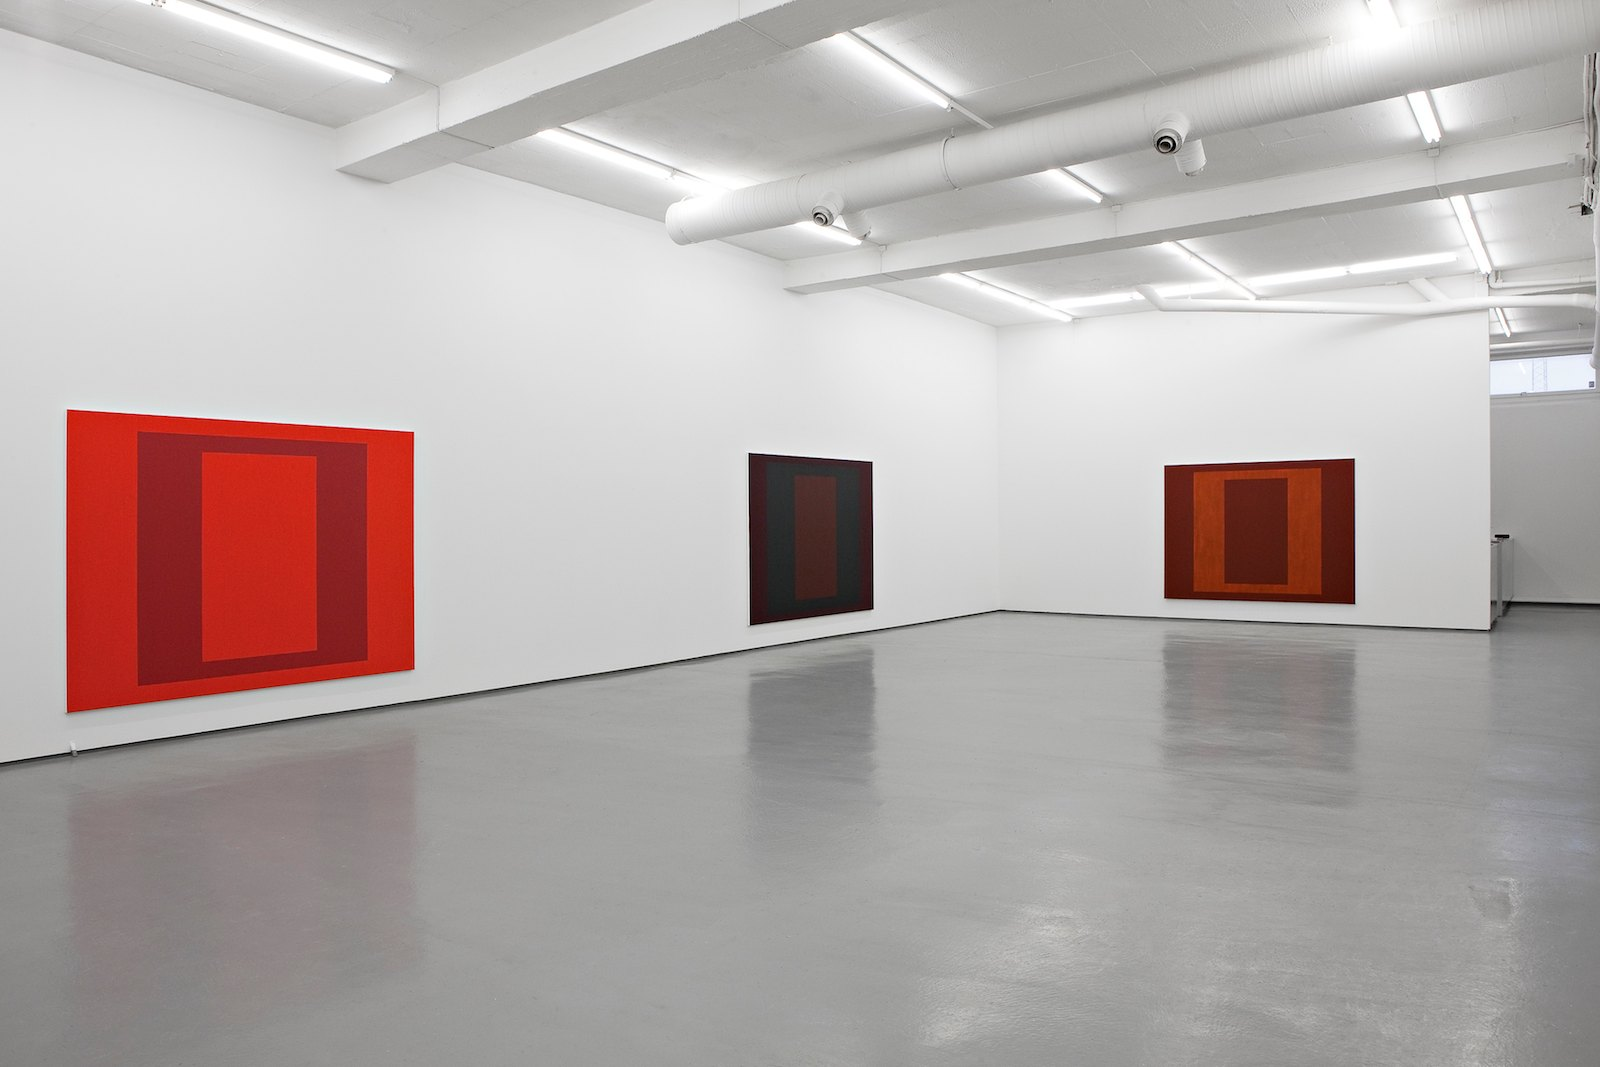 Installation view, Arne Malmedal, New Paintings, Galleri Riis, Oslo, 2009